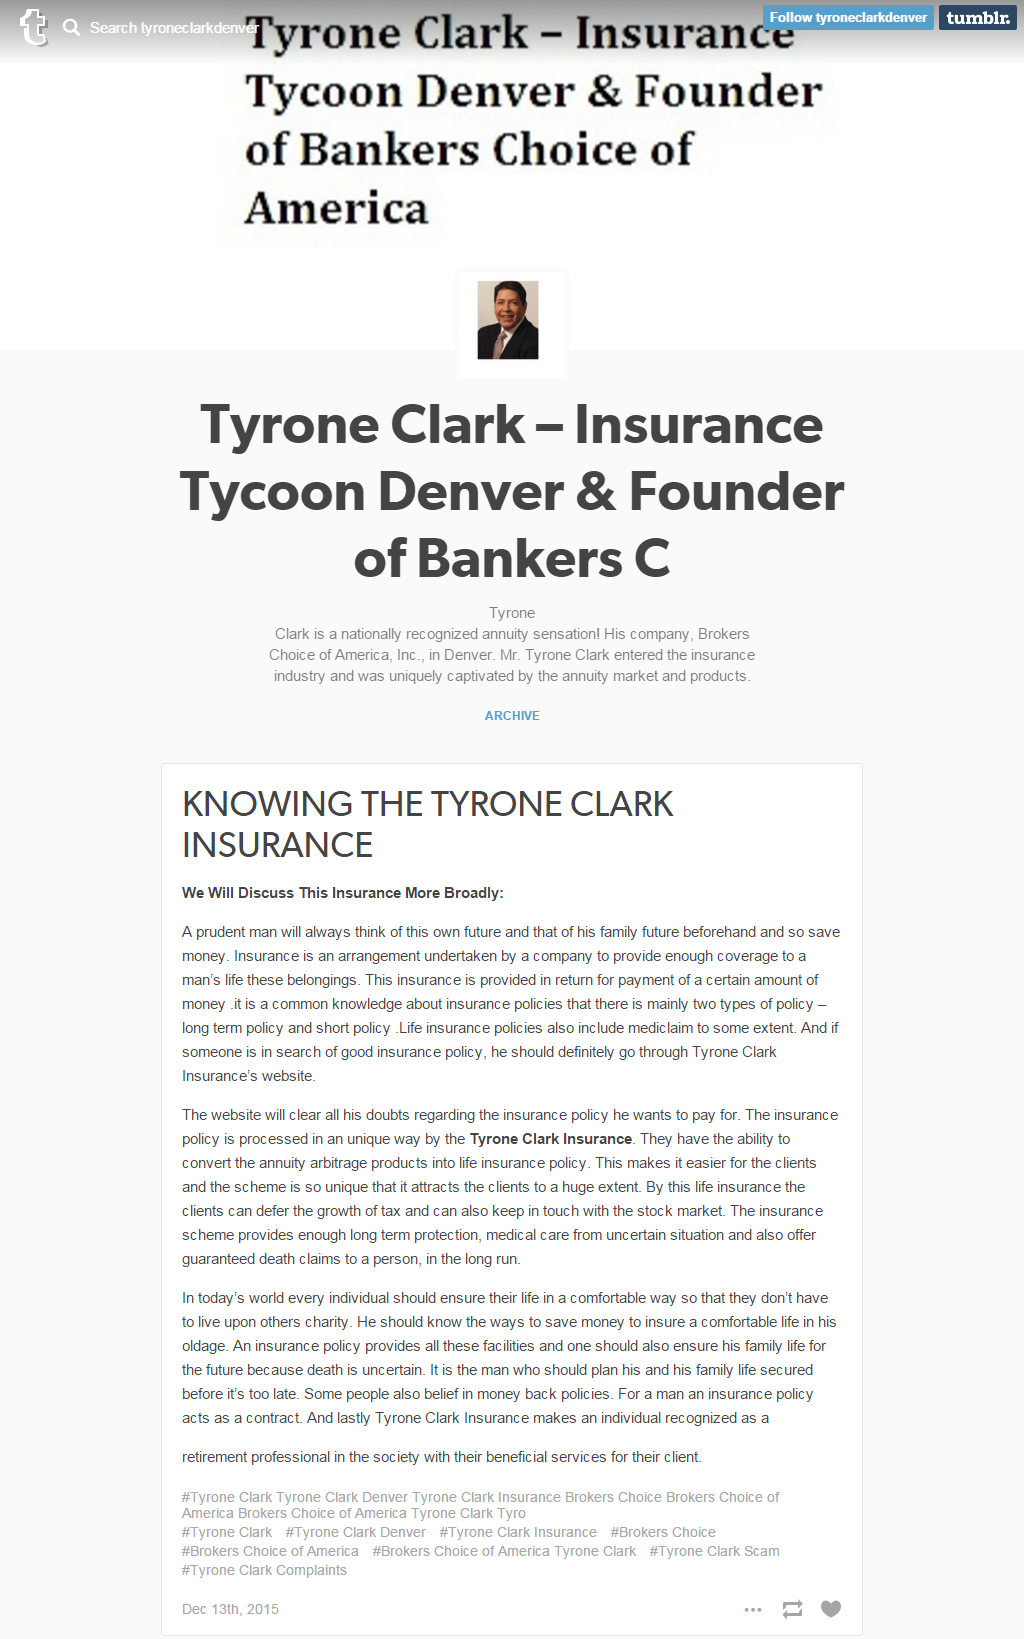 Tyrone Clark, Tyrone Clark Denver, Tyrone Clark Insurance and Brokers Choice